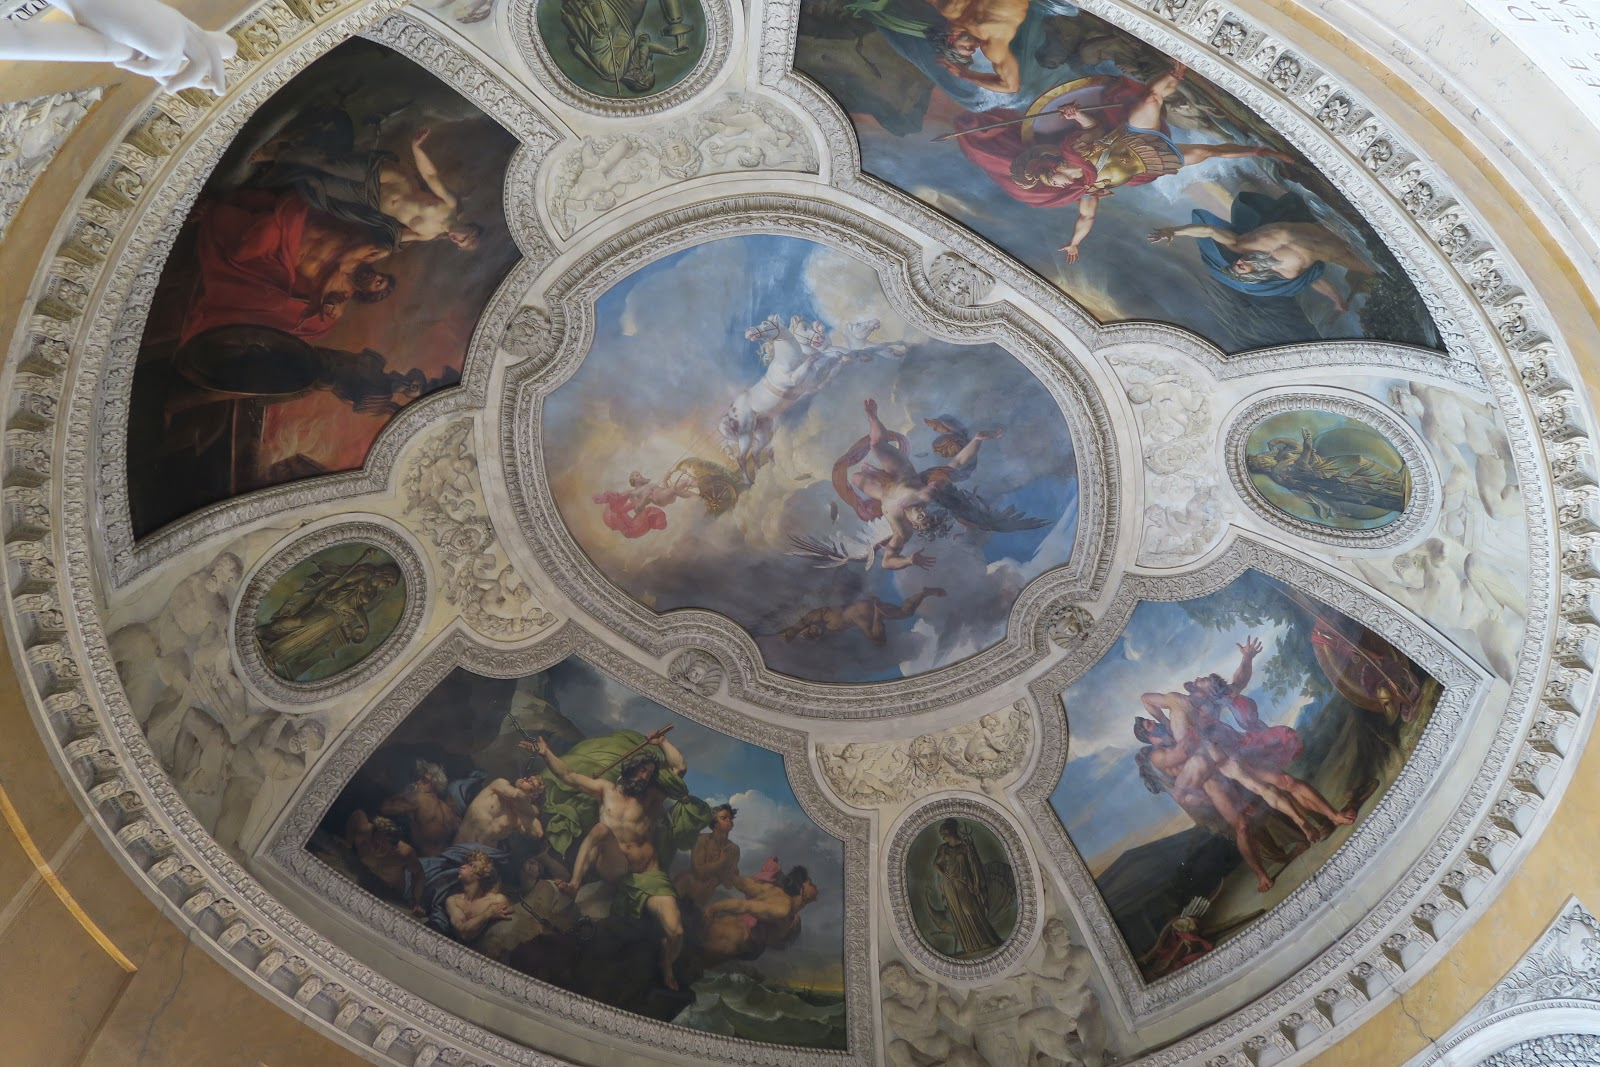 Ornate ceiling in the Louvre